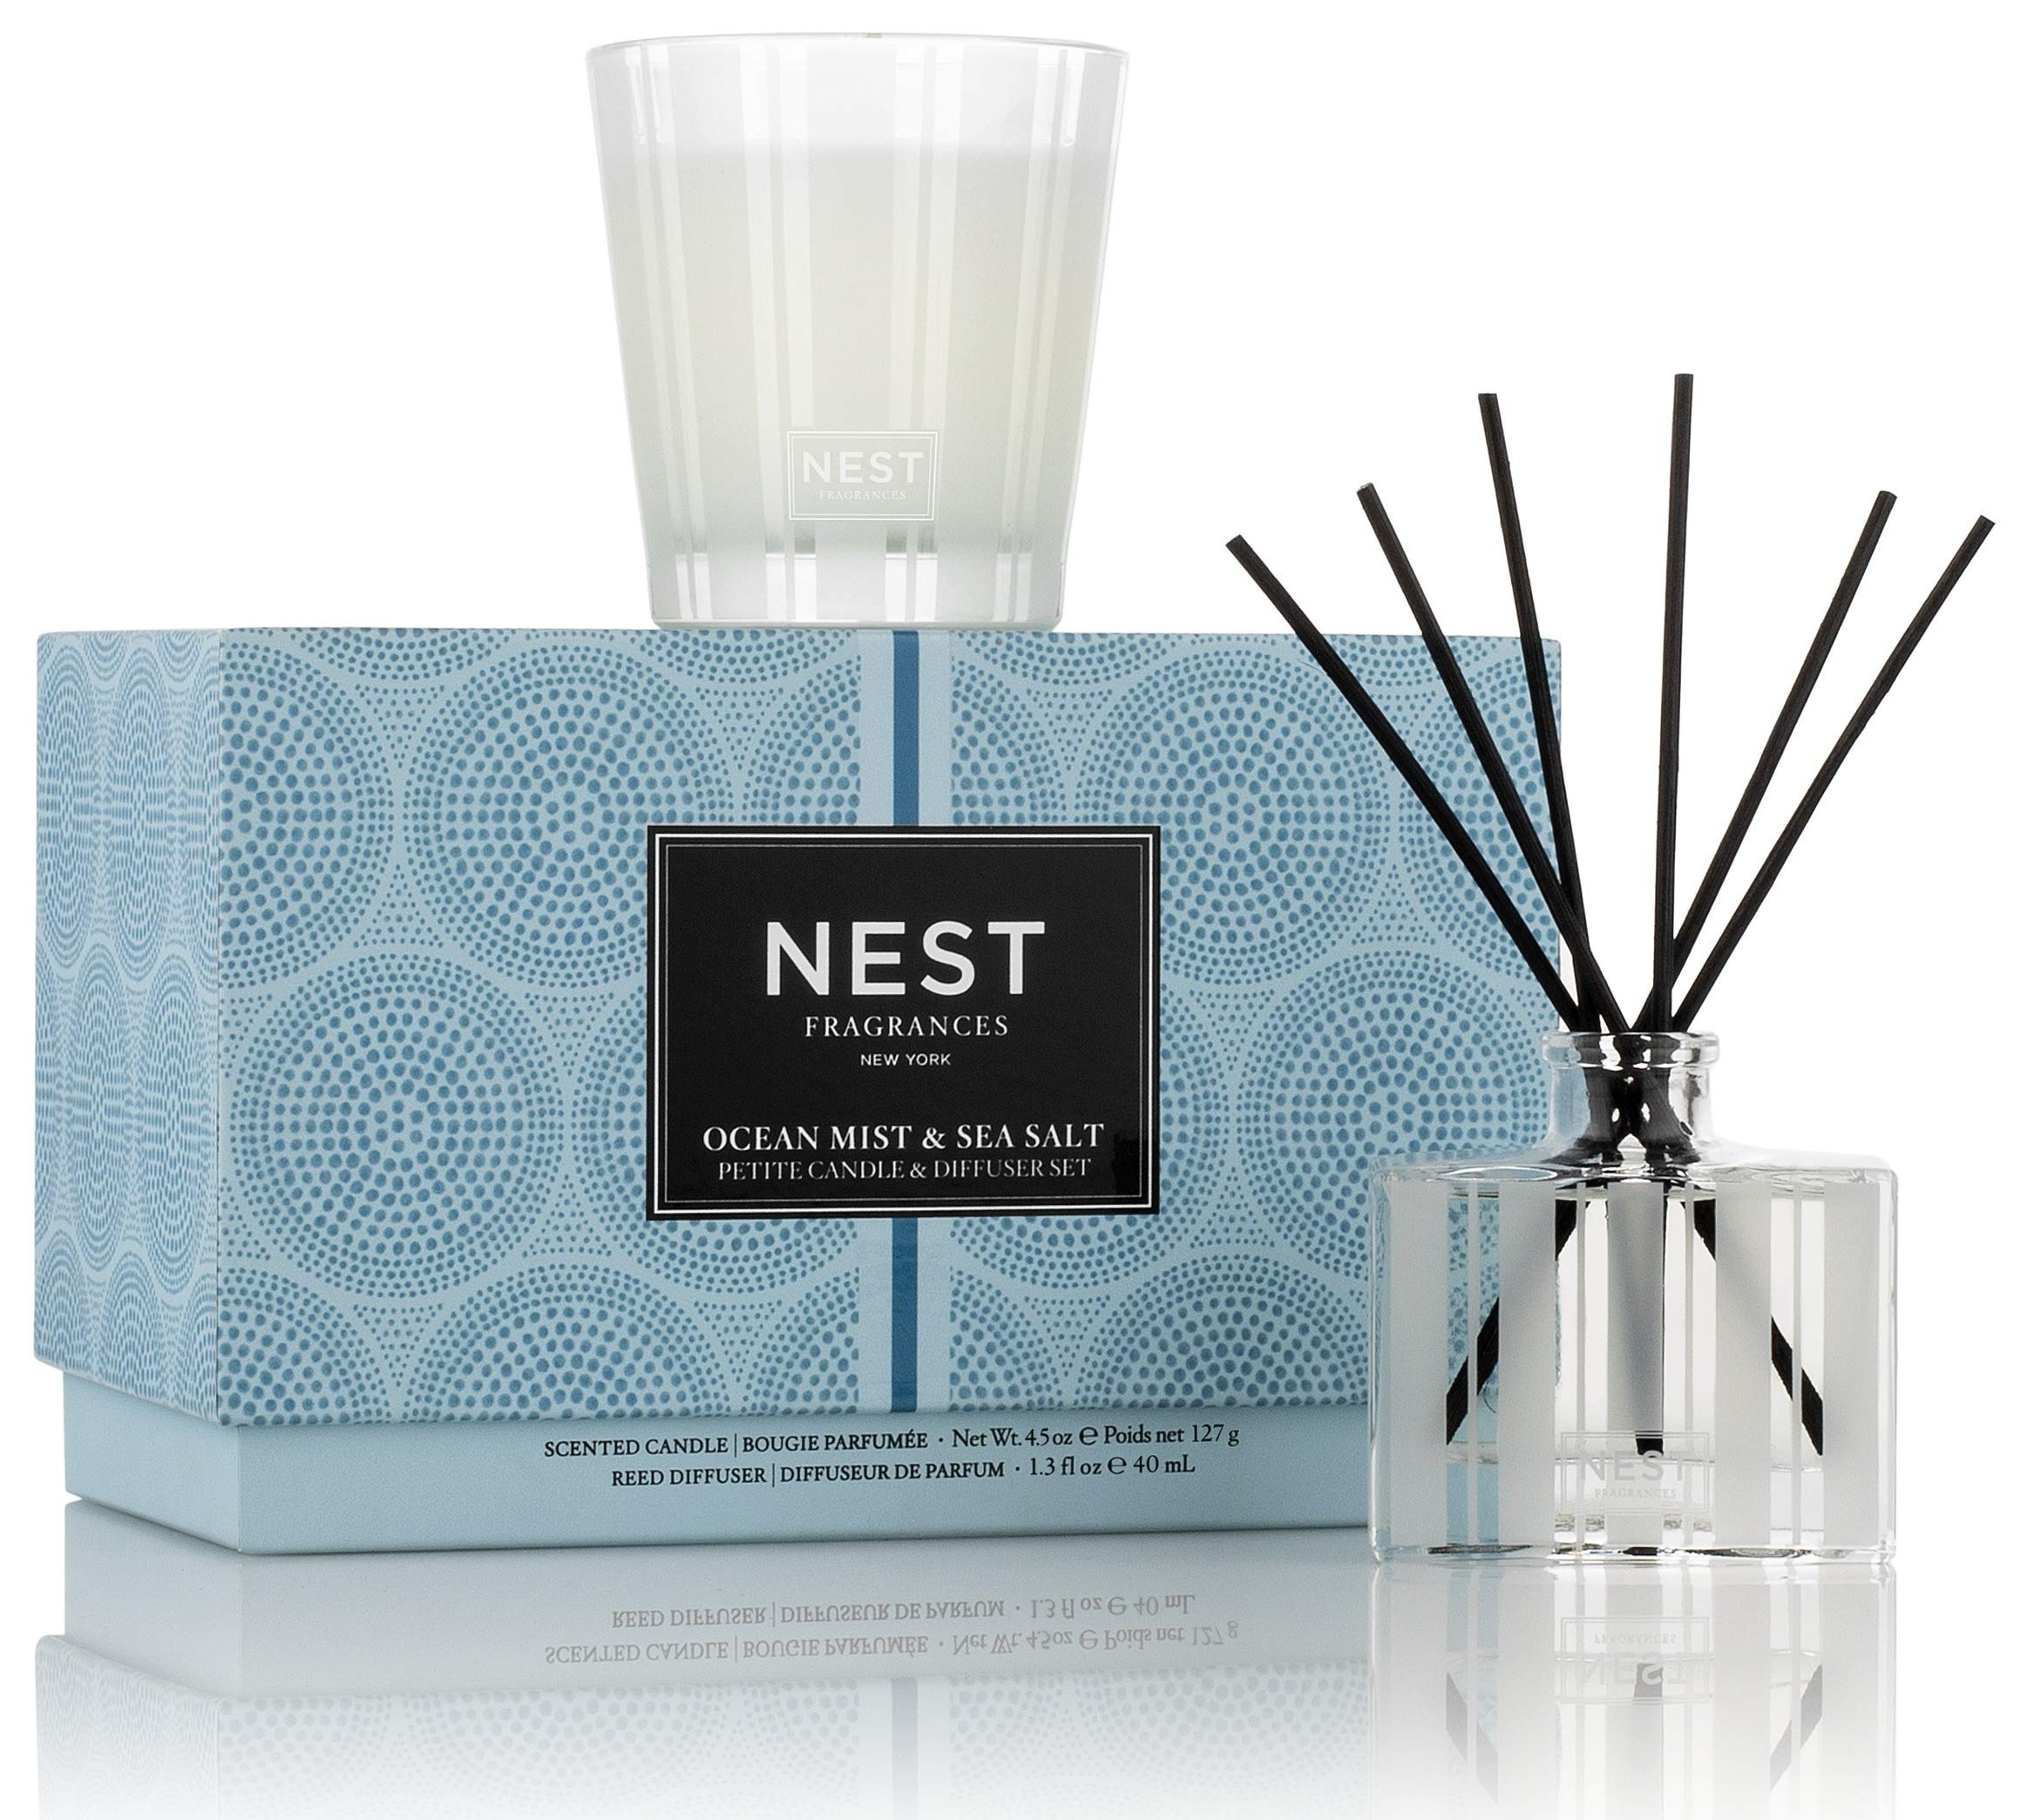 NEST Fragrances Ocean Mist & Sea Salt Petite Candle & Reed Diffuser Set by NEST Fragrances (Image #2)